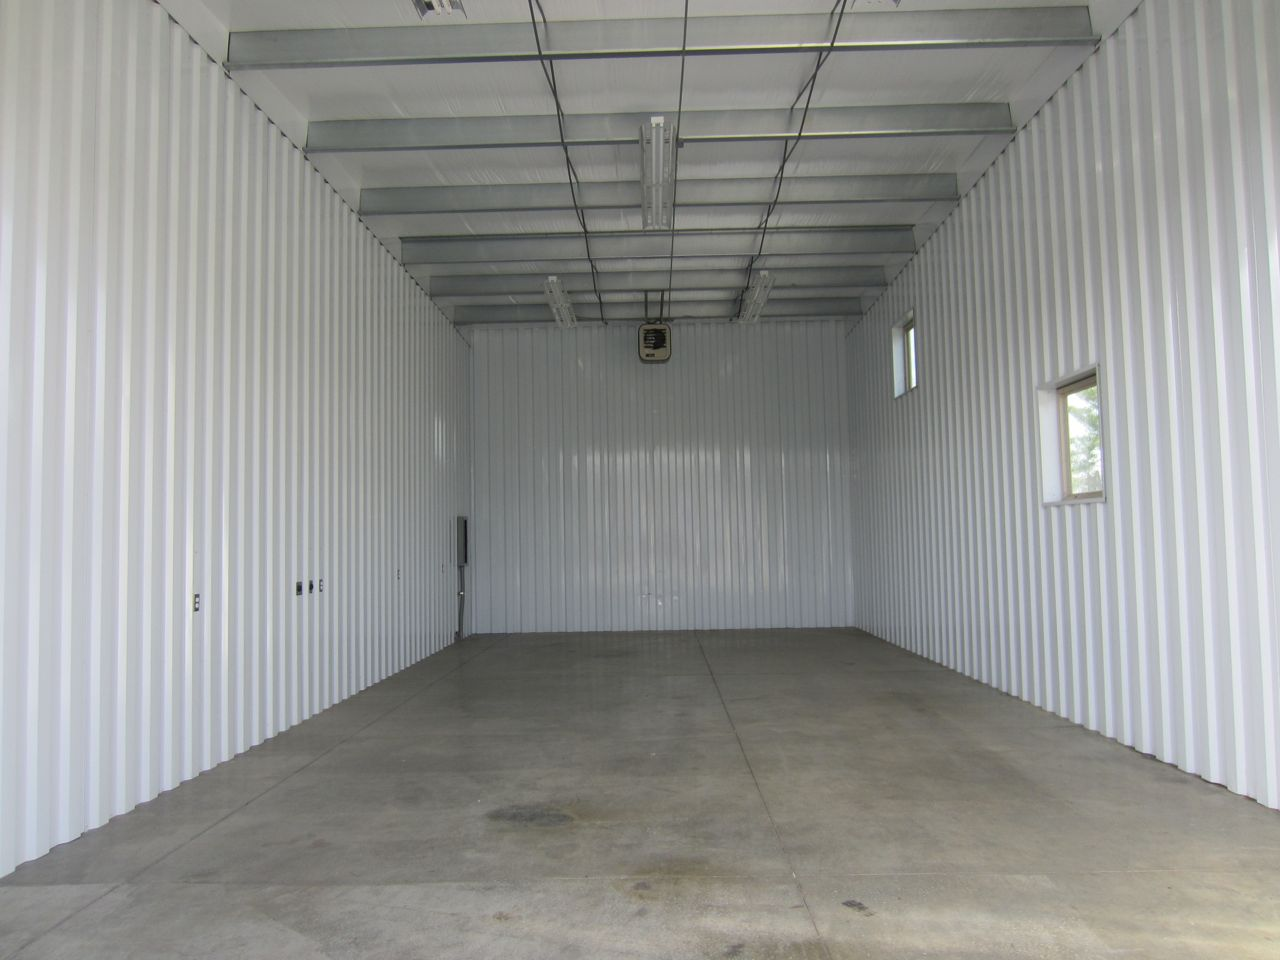 This is the smallest unit the storage place offers.